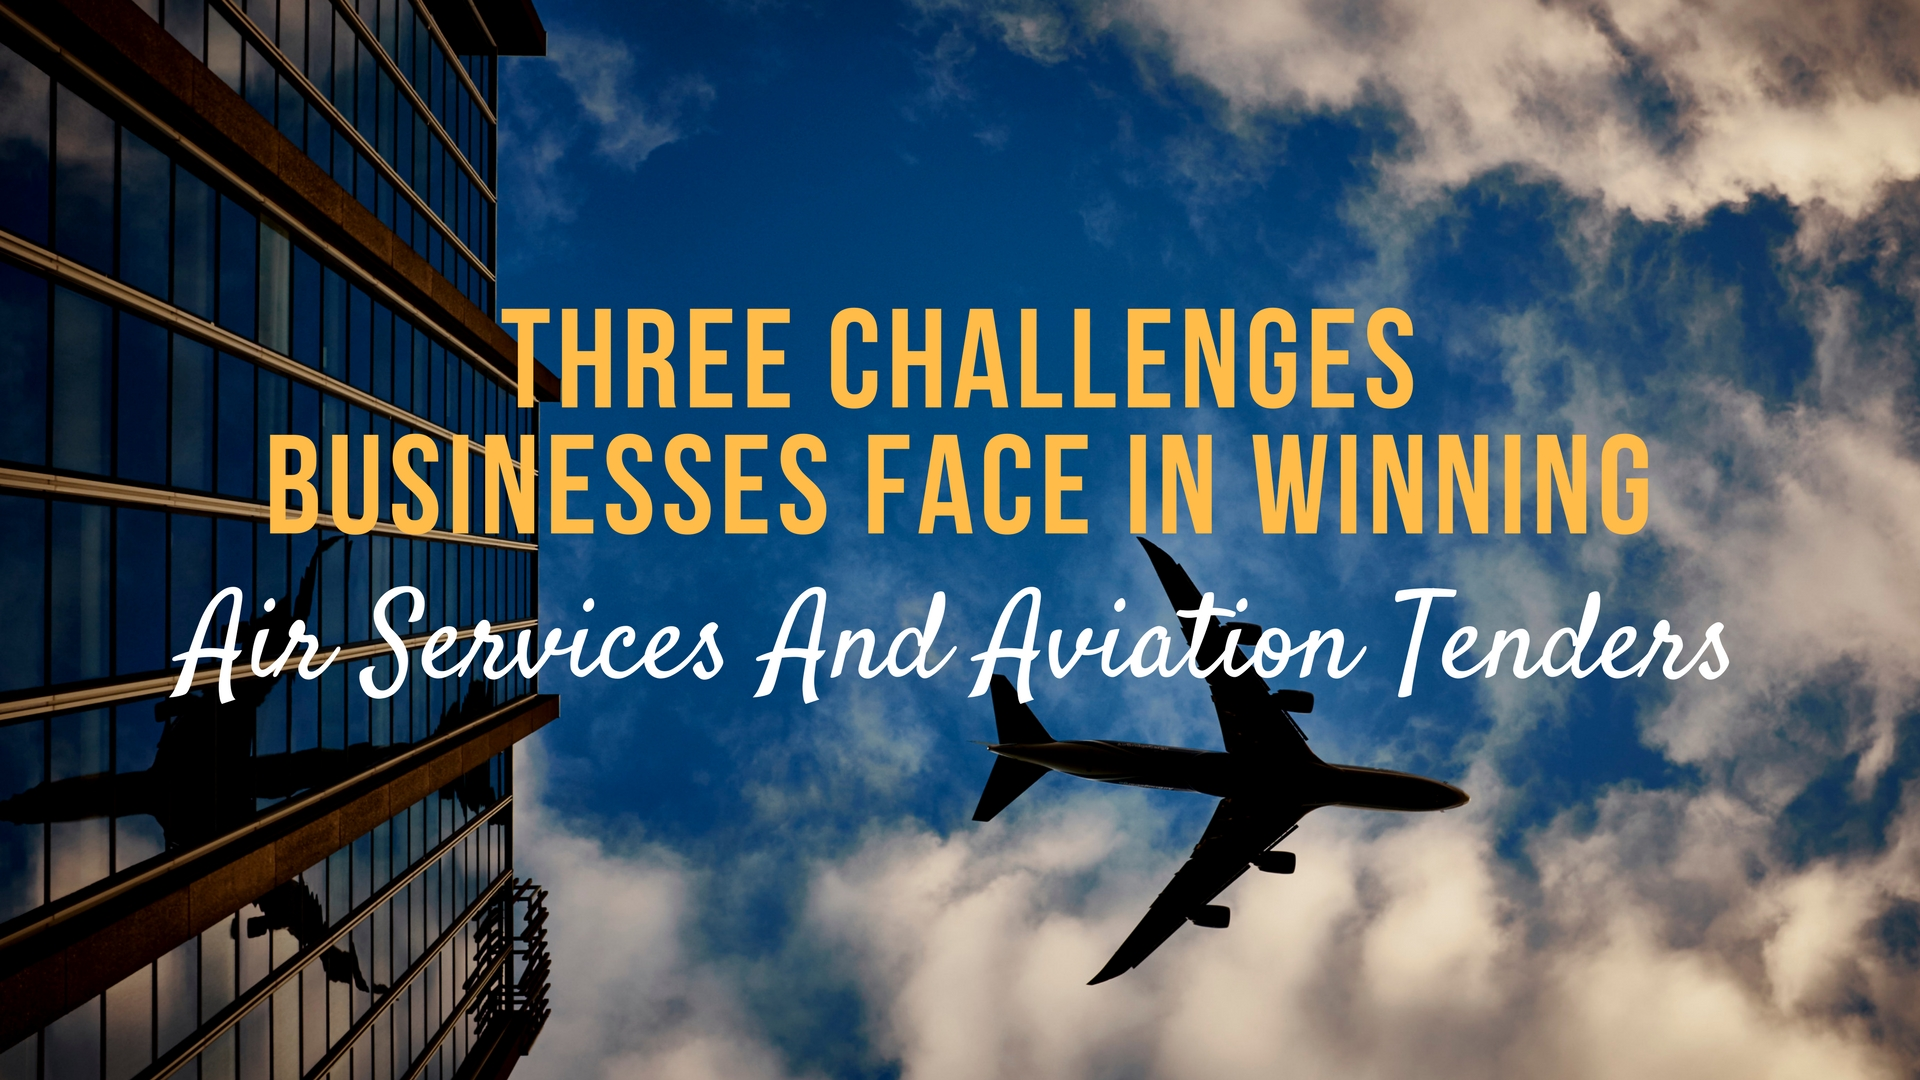 air services and aviation tenders